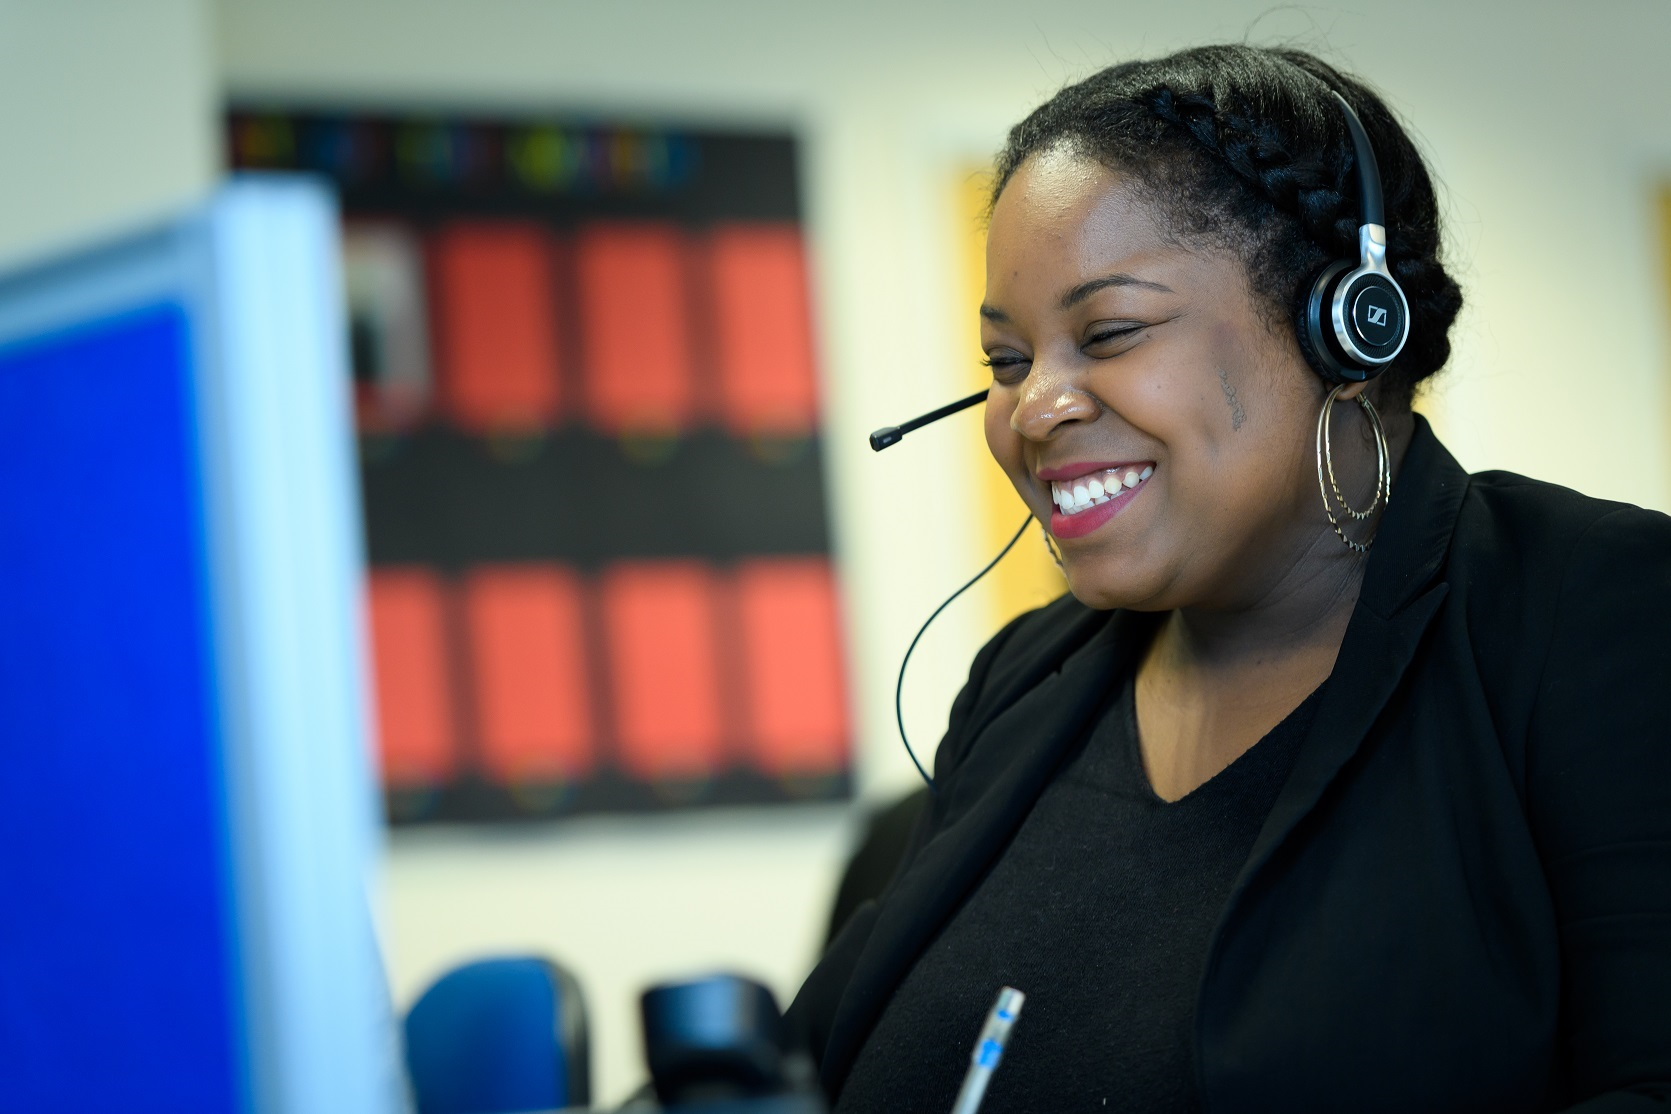 Panther takes giant leap forward with customer service offering